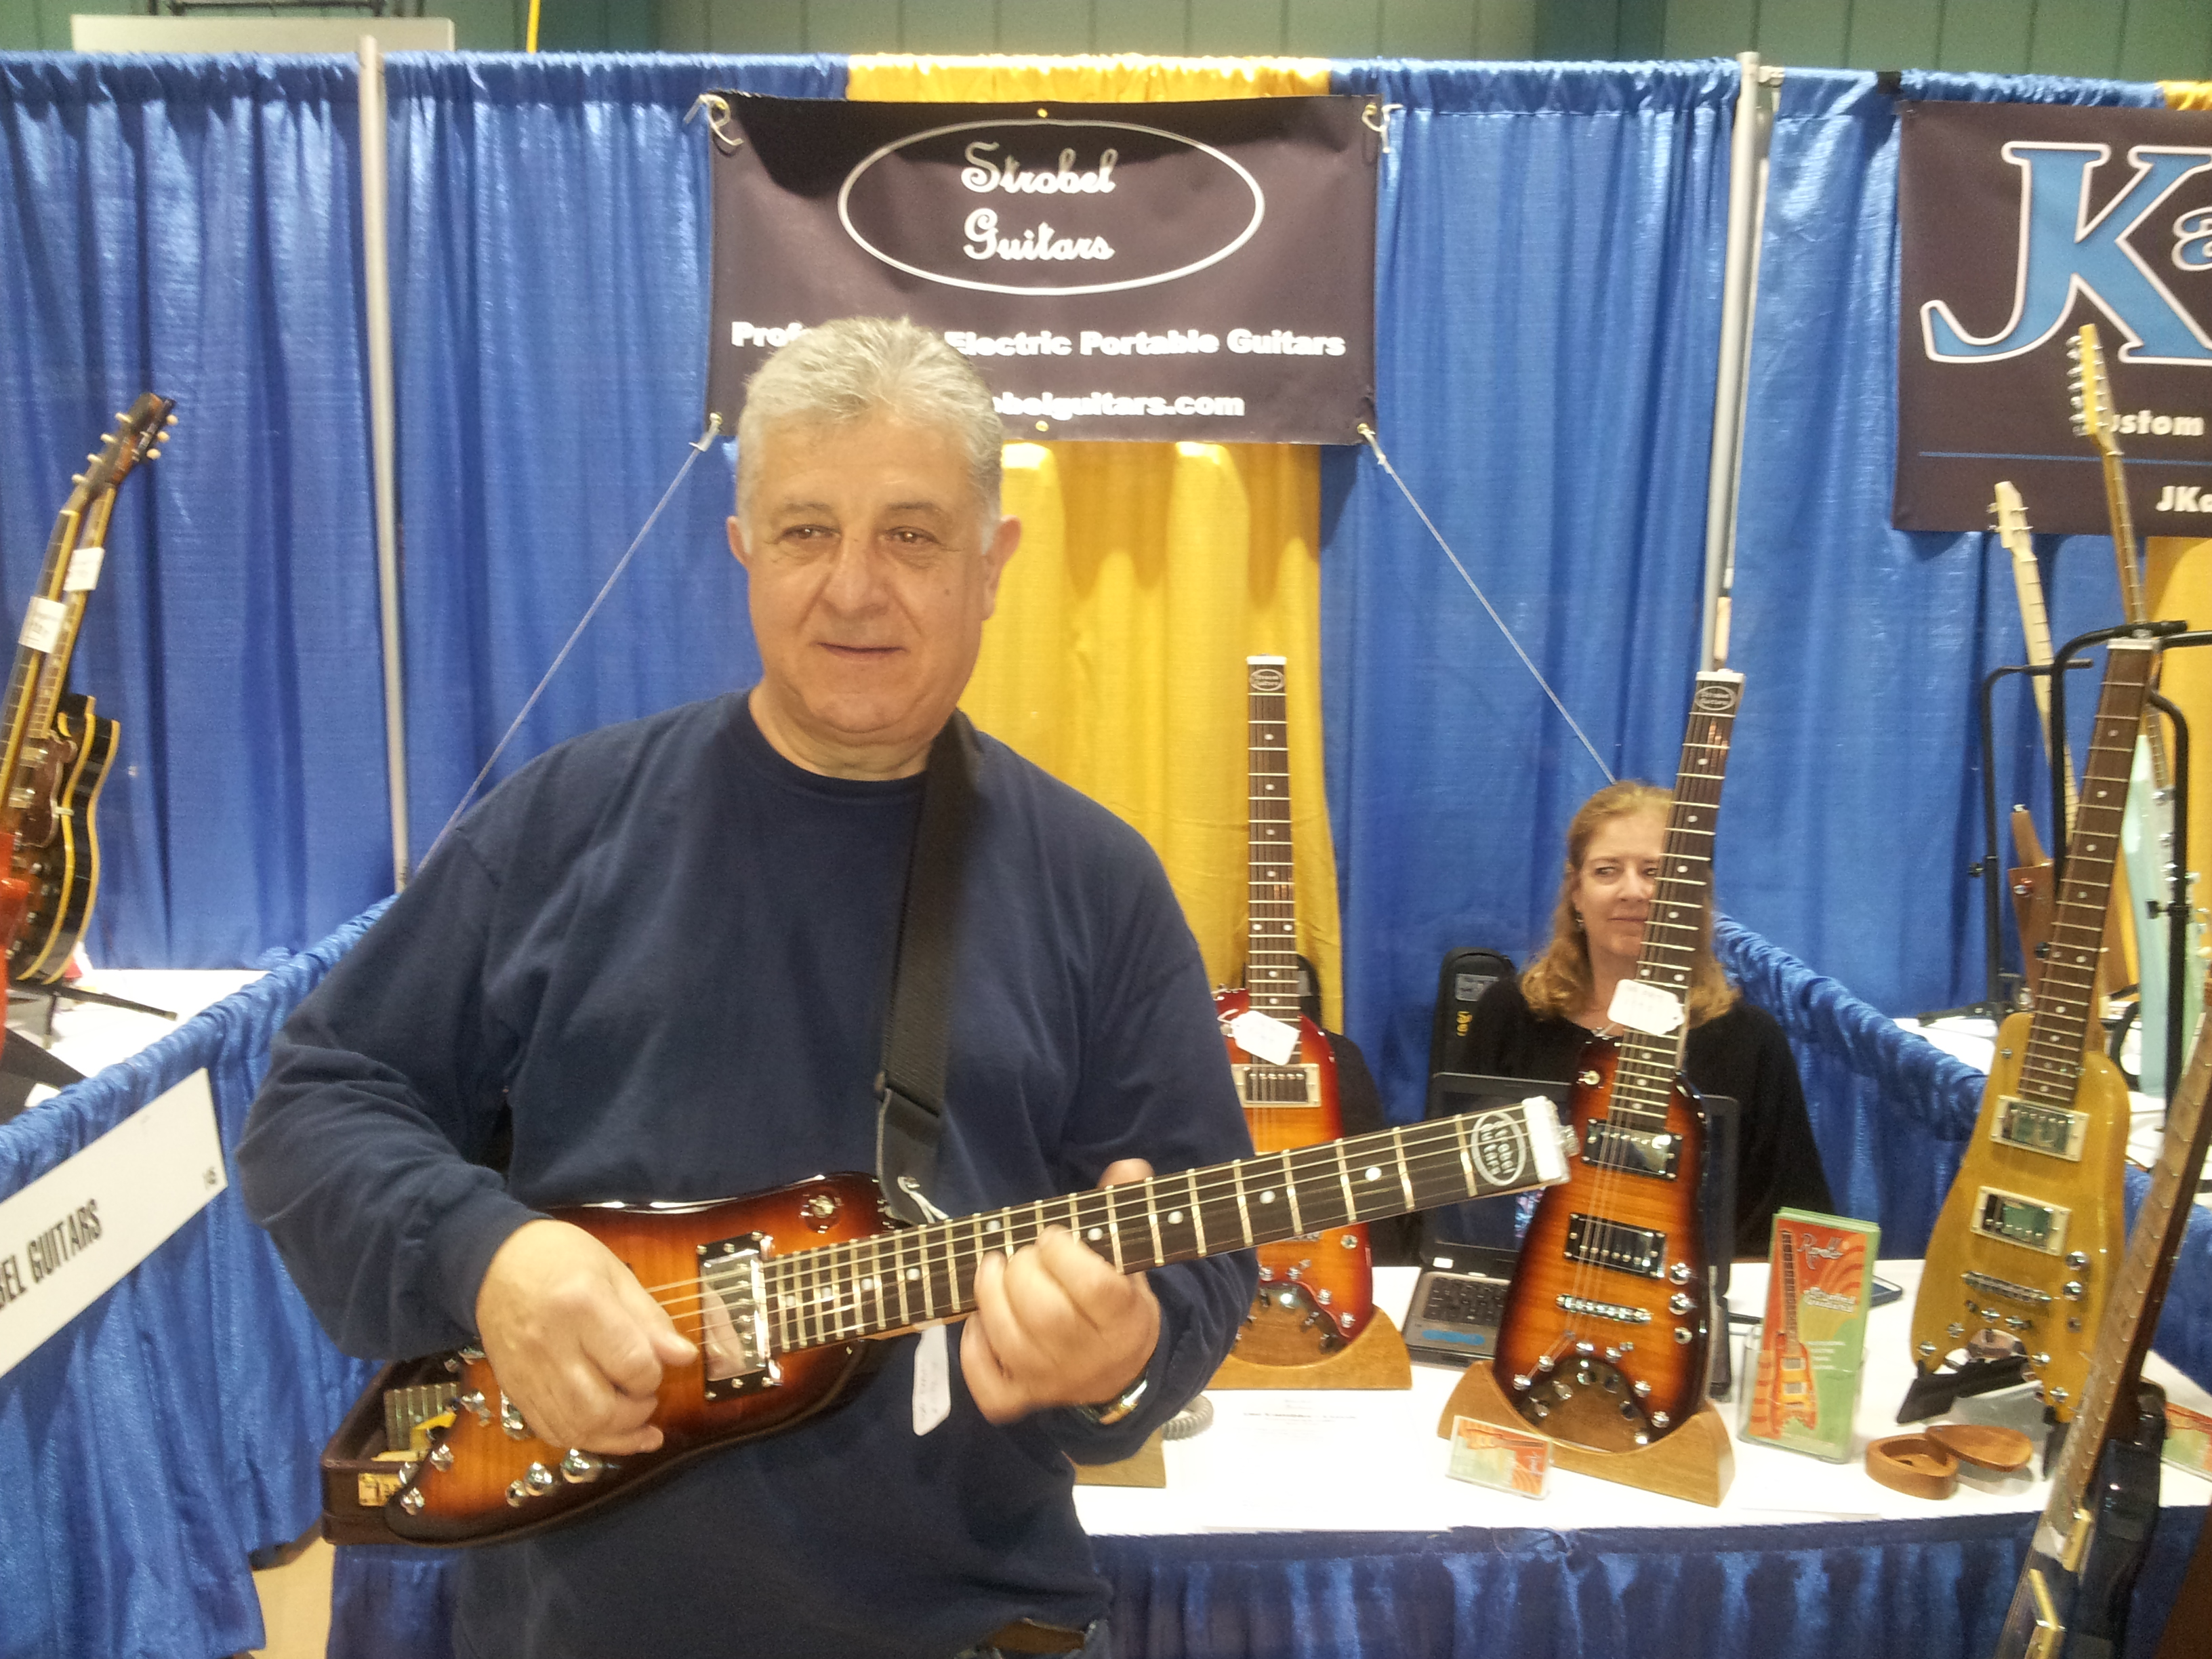 Rudy checking out a Rambler portable guitar at Long Island Guitar Show